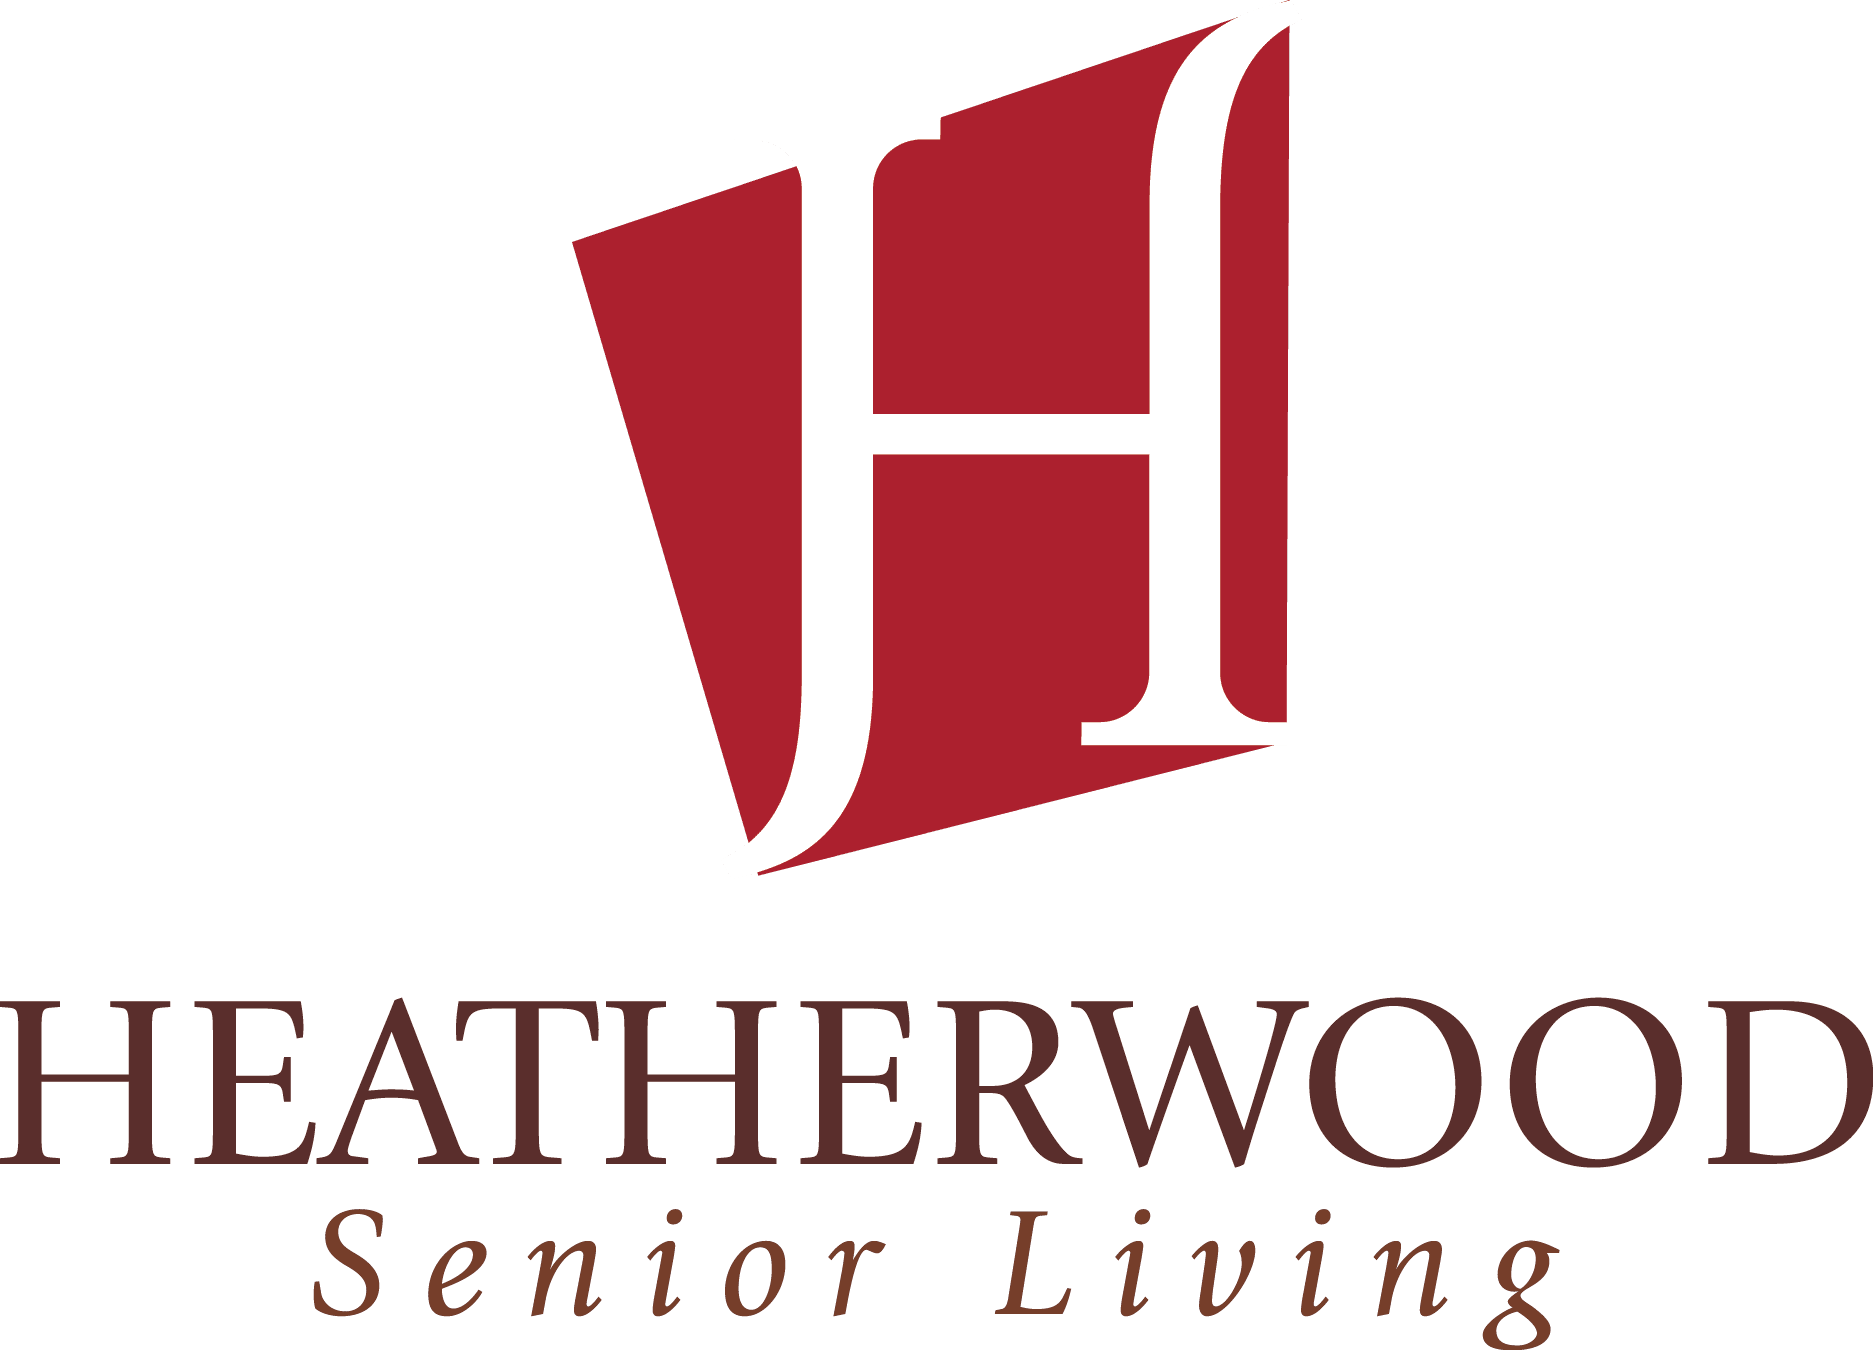 Heatherwood Senior Living